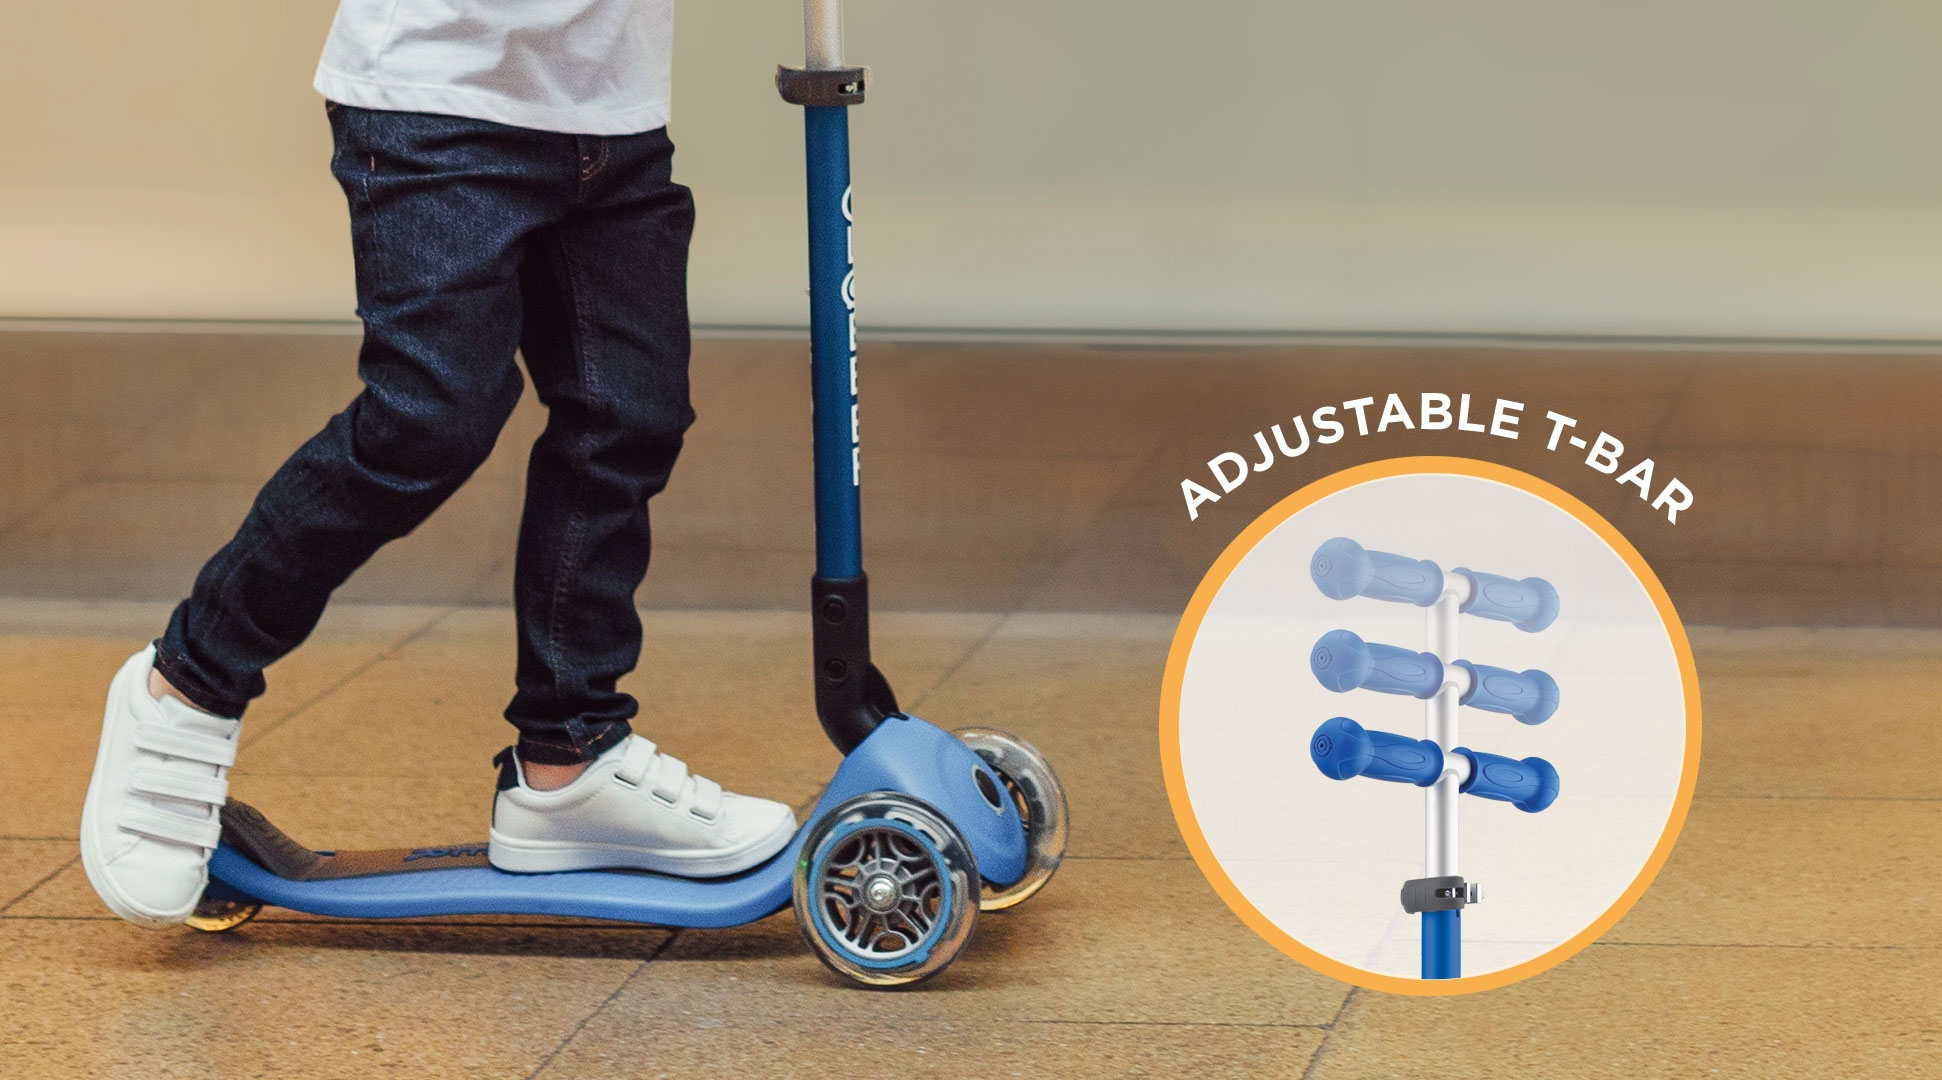 3 wheel scooter for kids aged 3 to 6+ years